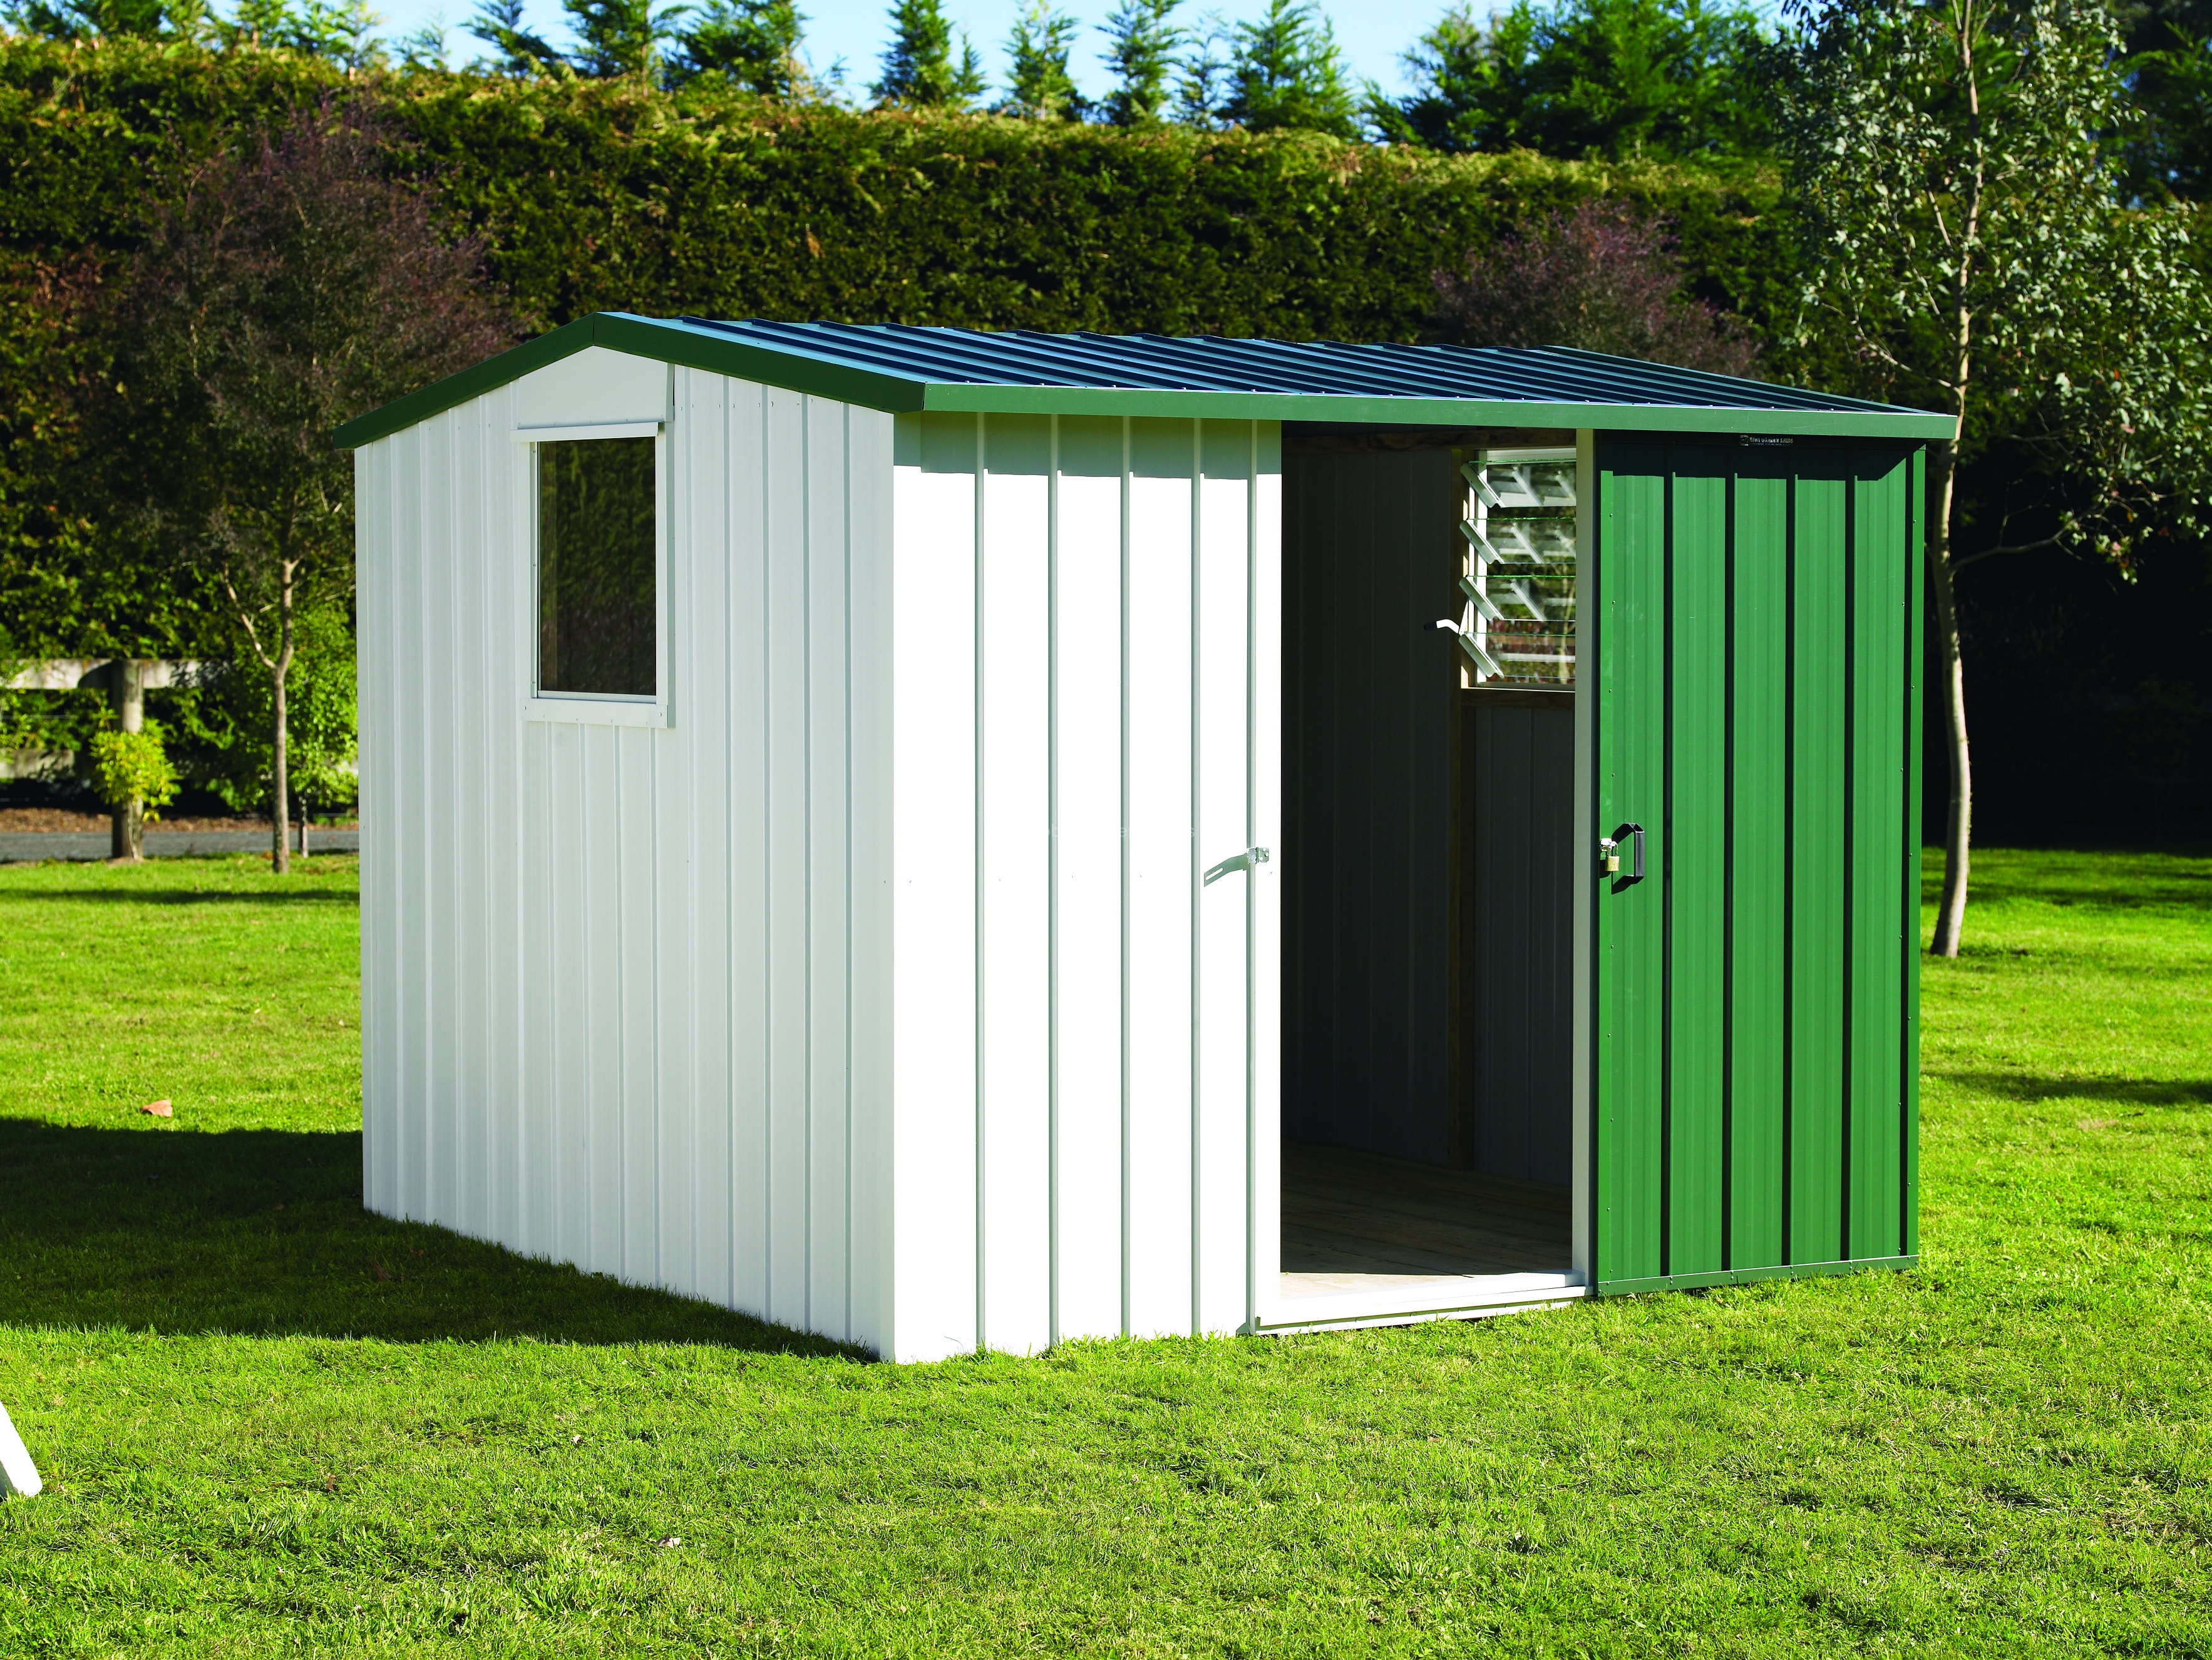 Garden Shed Auckland Garden Shed Pictures New Zeland